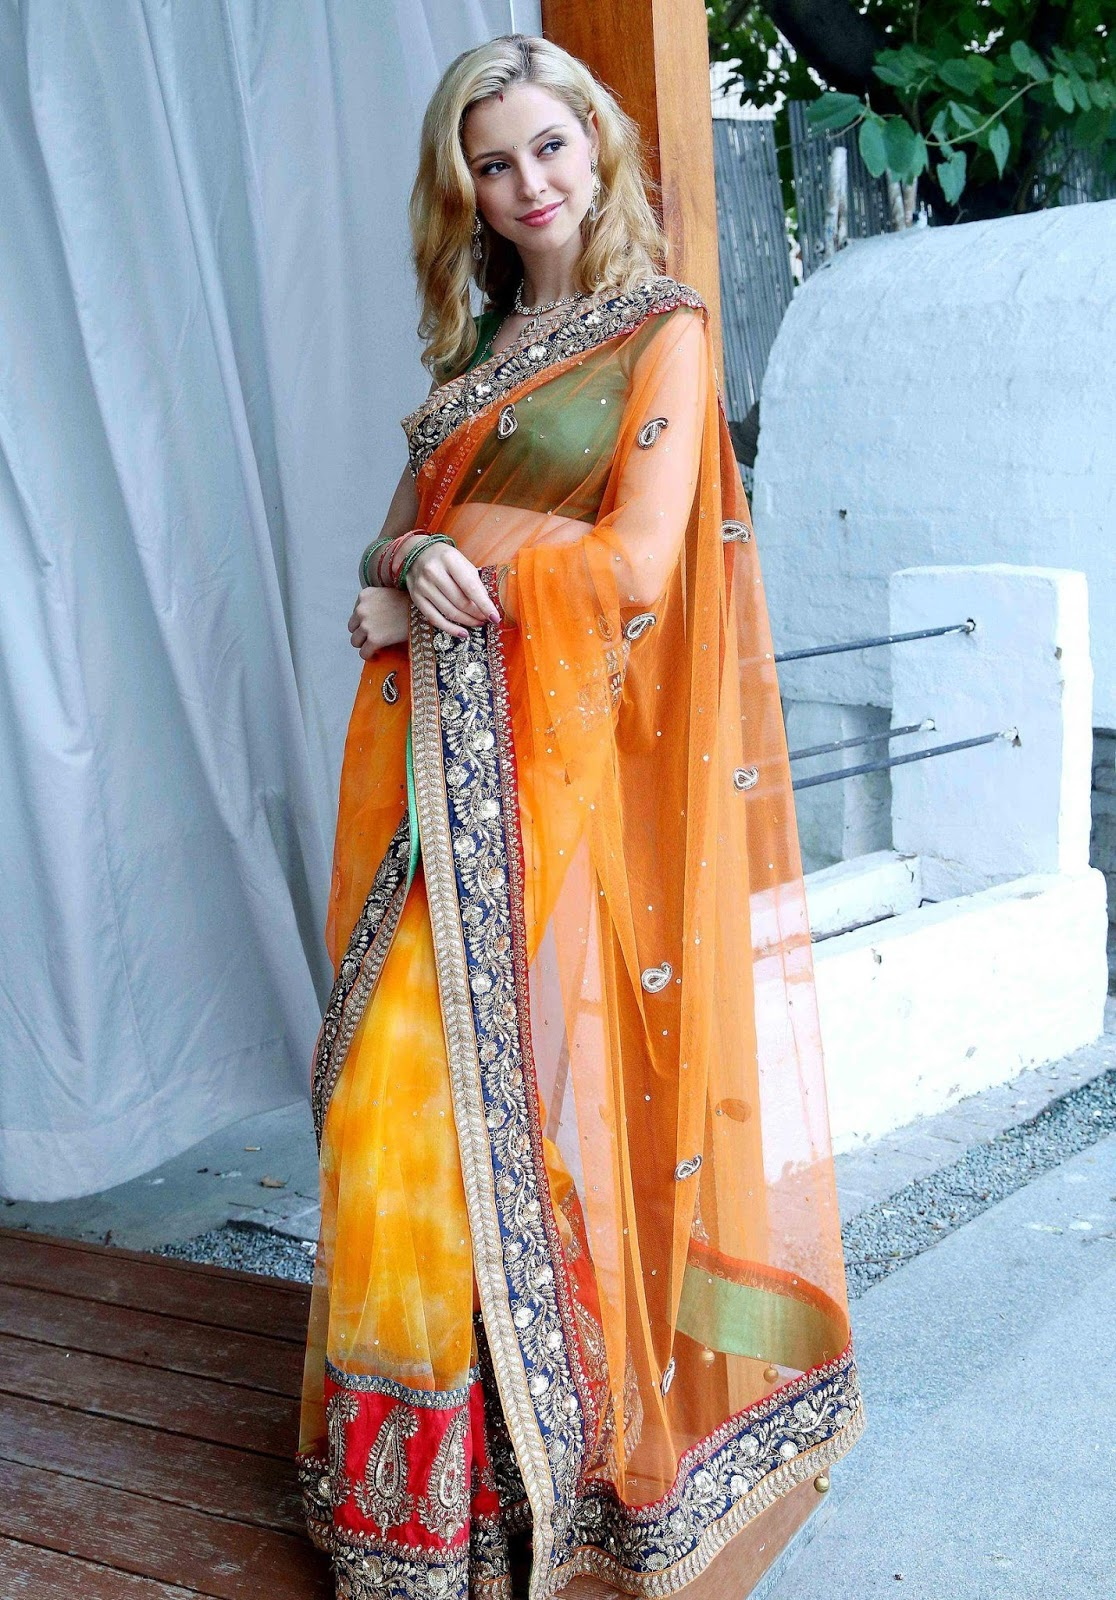 Tv Actress In Transparent Yellow Saree Sippora Zoutewelle